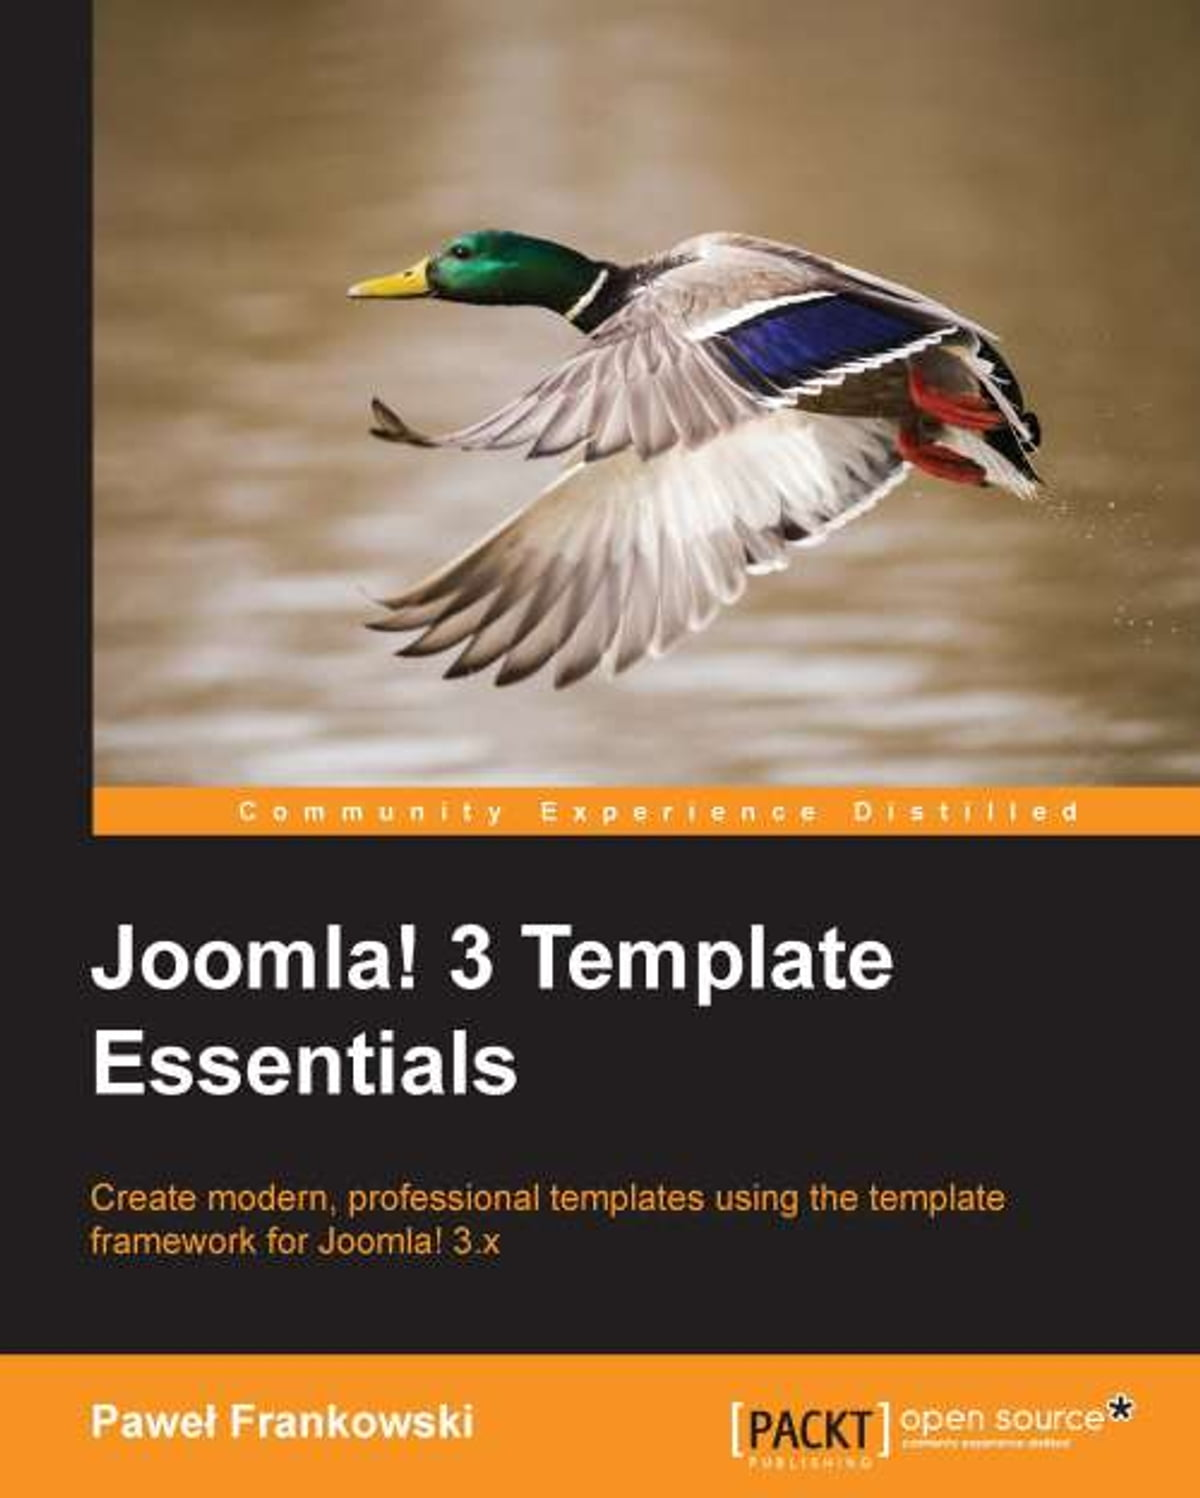 Joomla! 3 Template Essentials eBook by Paweł Frankowski ...